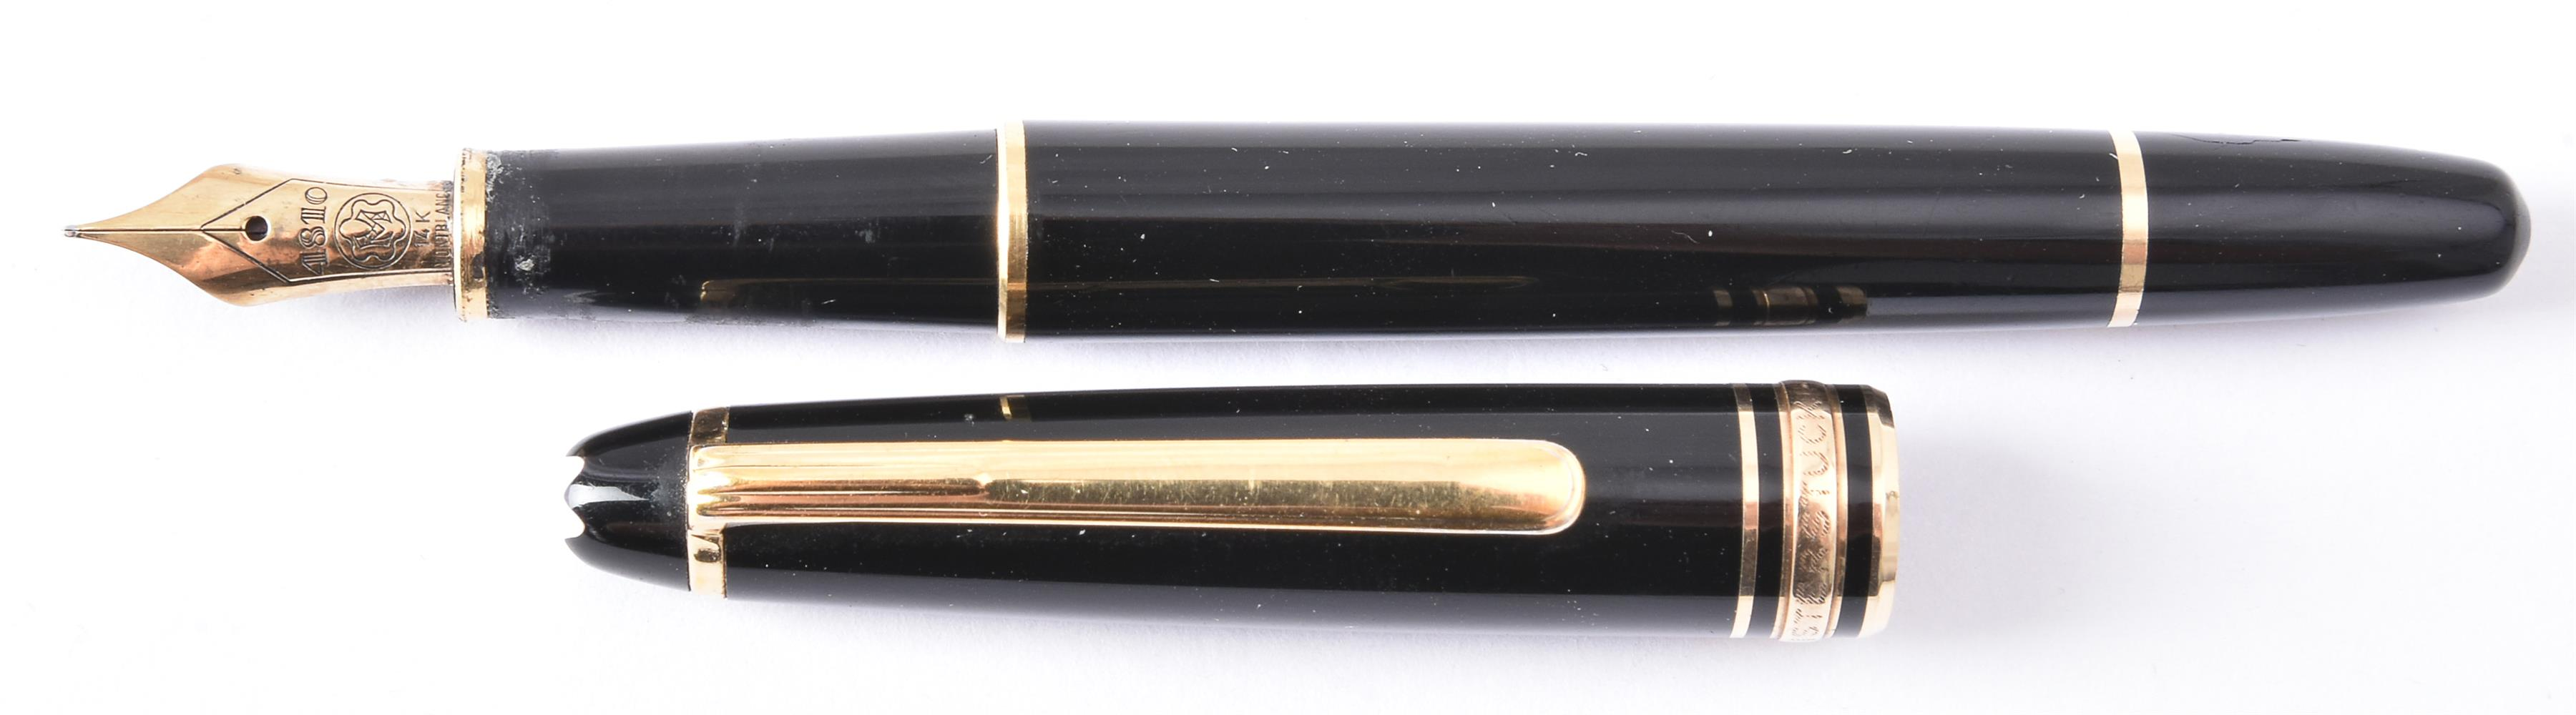 Montblanc, Meisterstuck, a black fountain pen - Image 2 of 3